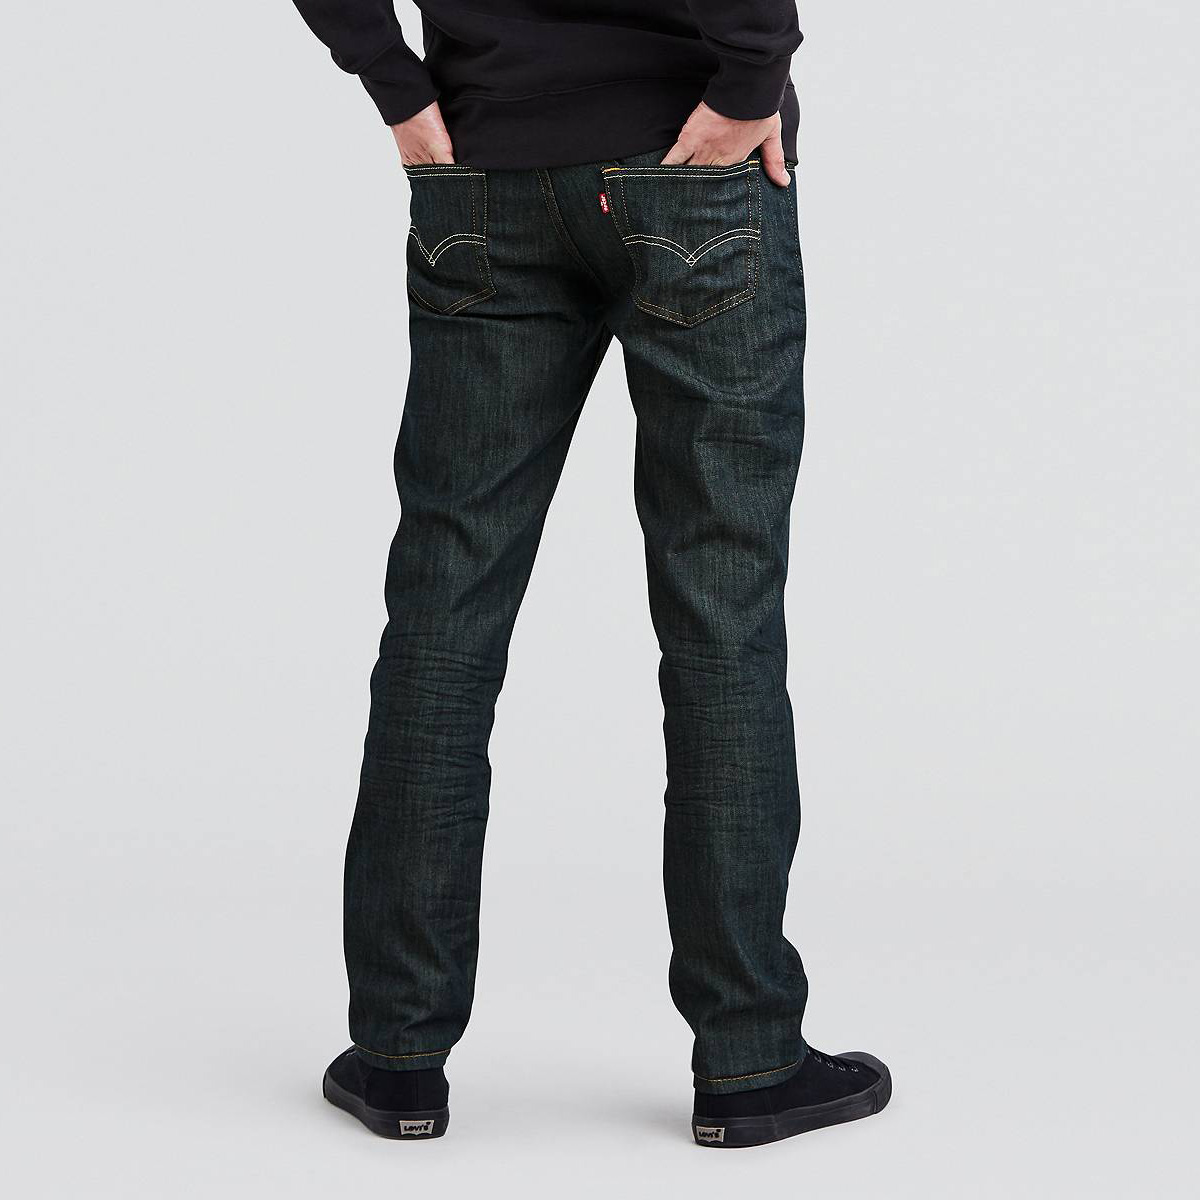 quan-jeans-levis-511-rinsed-playa-stretch